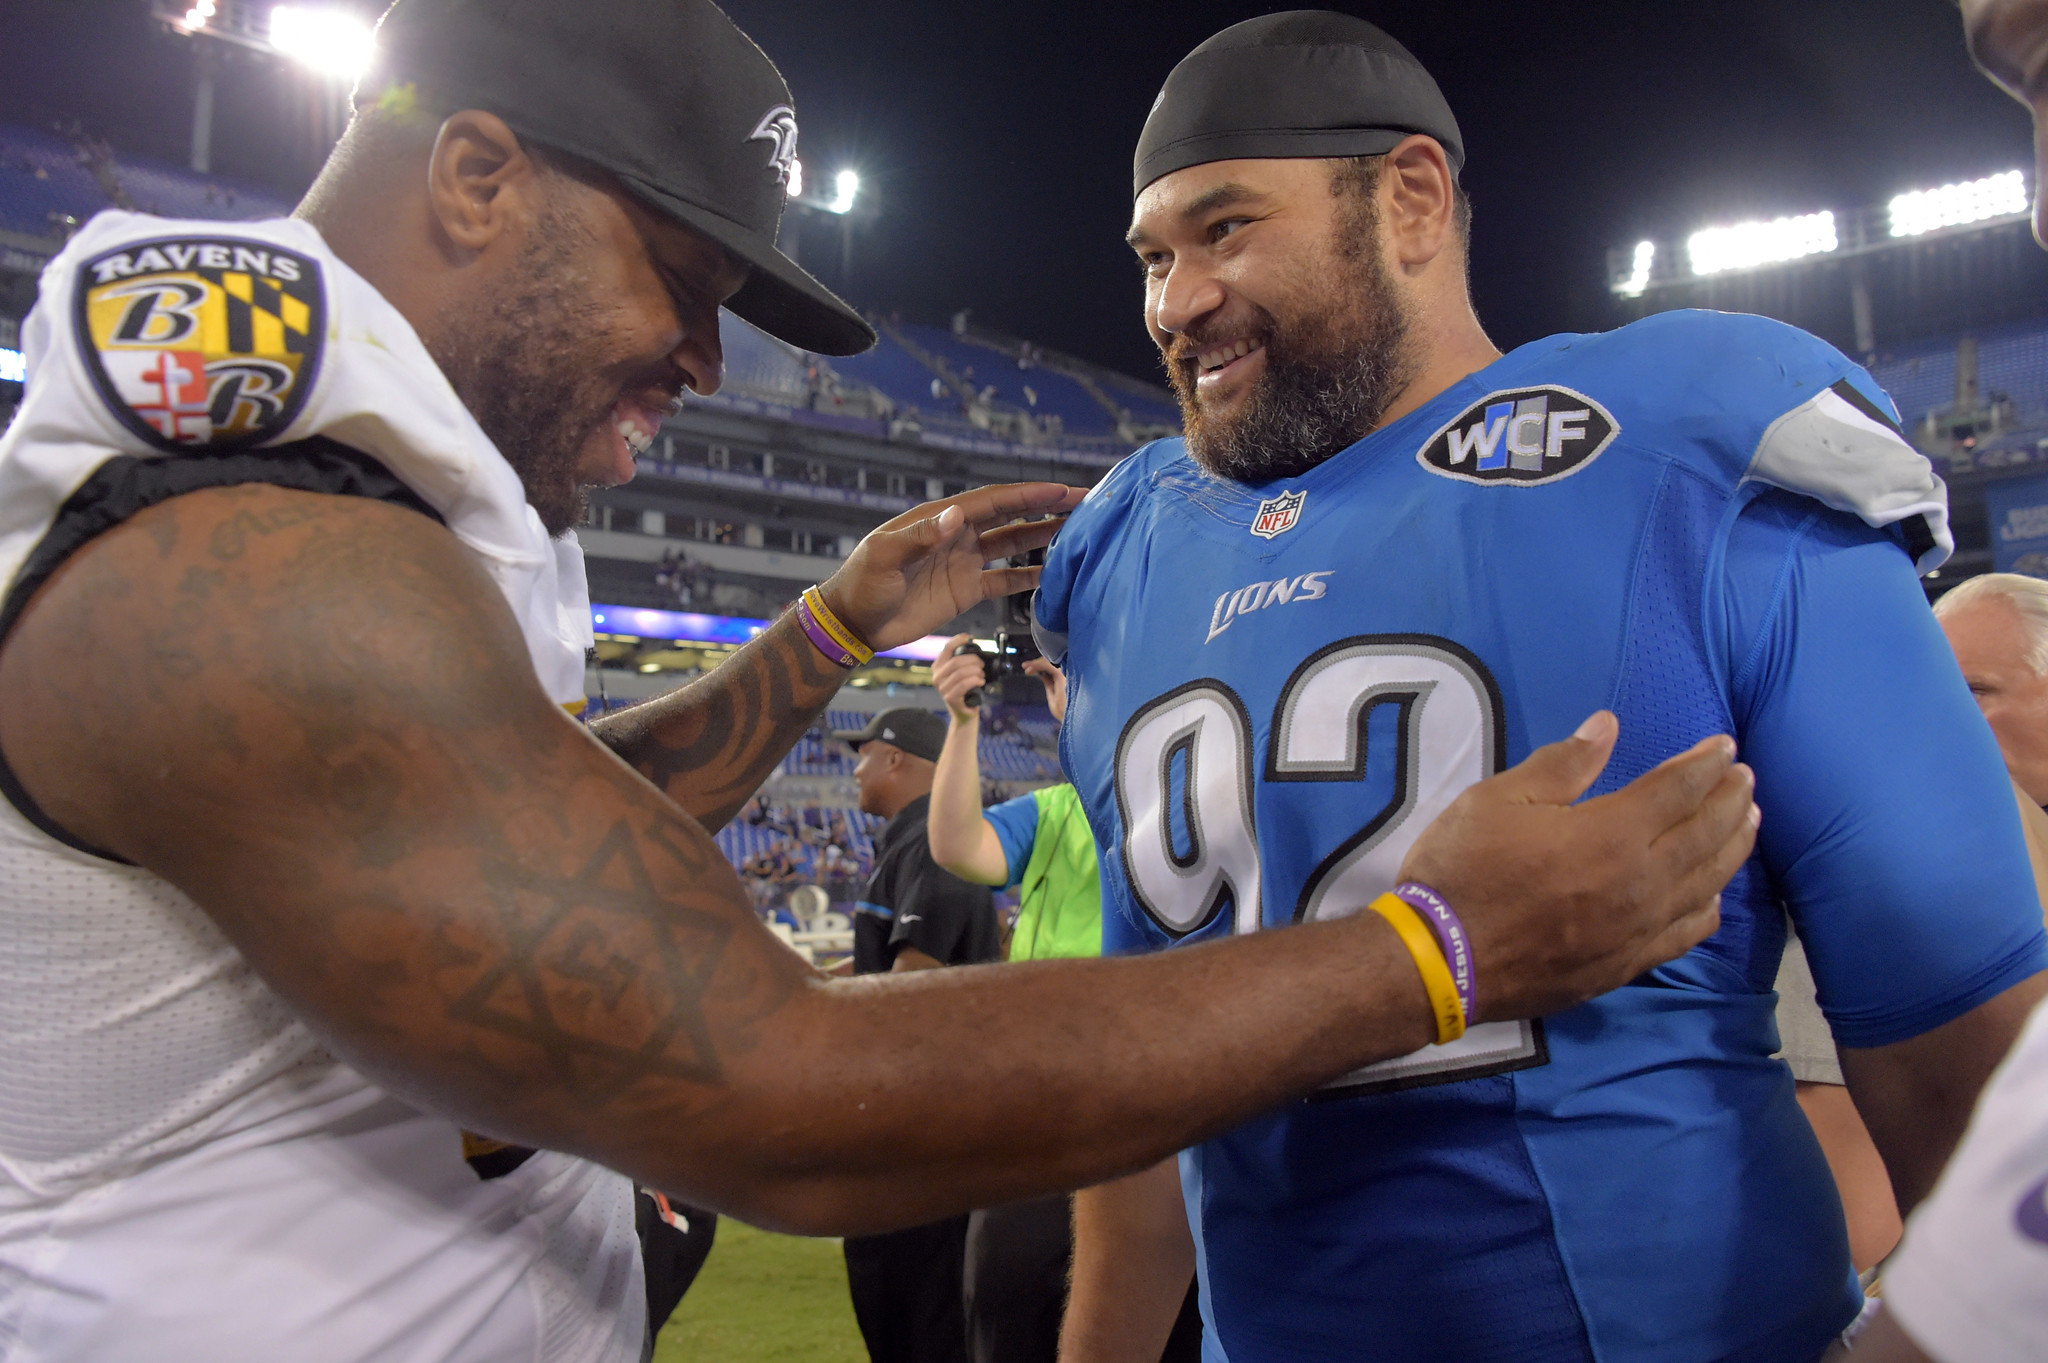 Bal-former-ravens-haloti-ngata-anquan-boldin-appreciate-warm-welcome-from-baltimore-fans-20160827